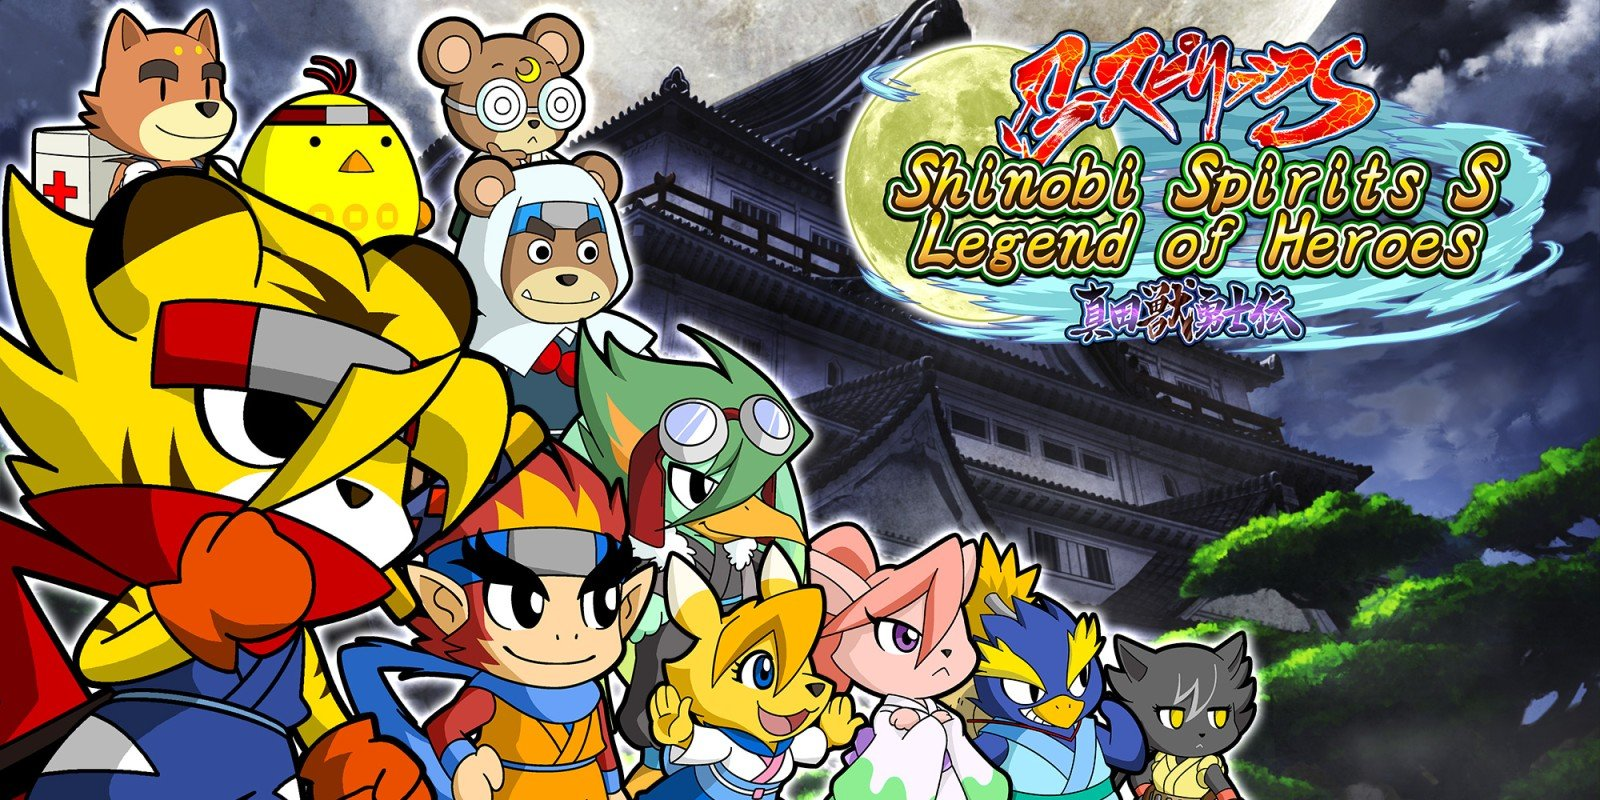 Shinobi Spirits S: Legend of Heroes